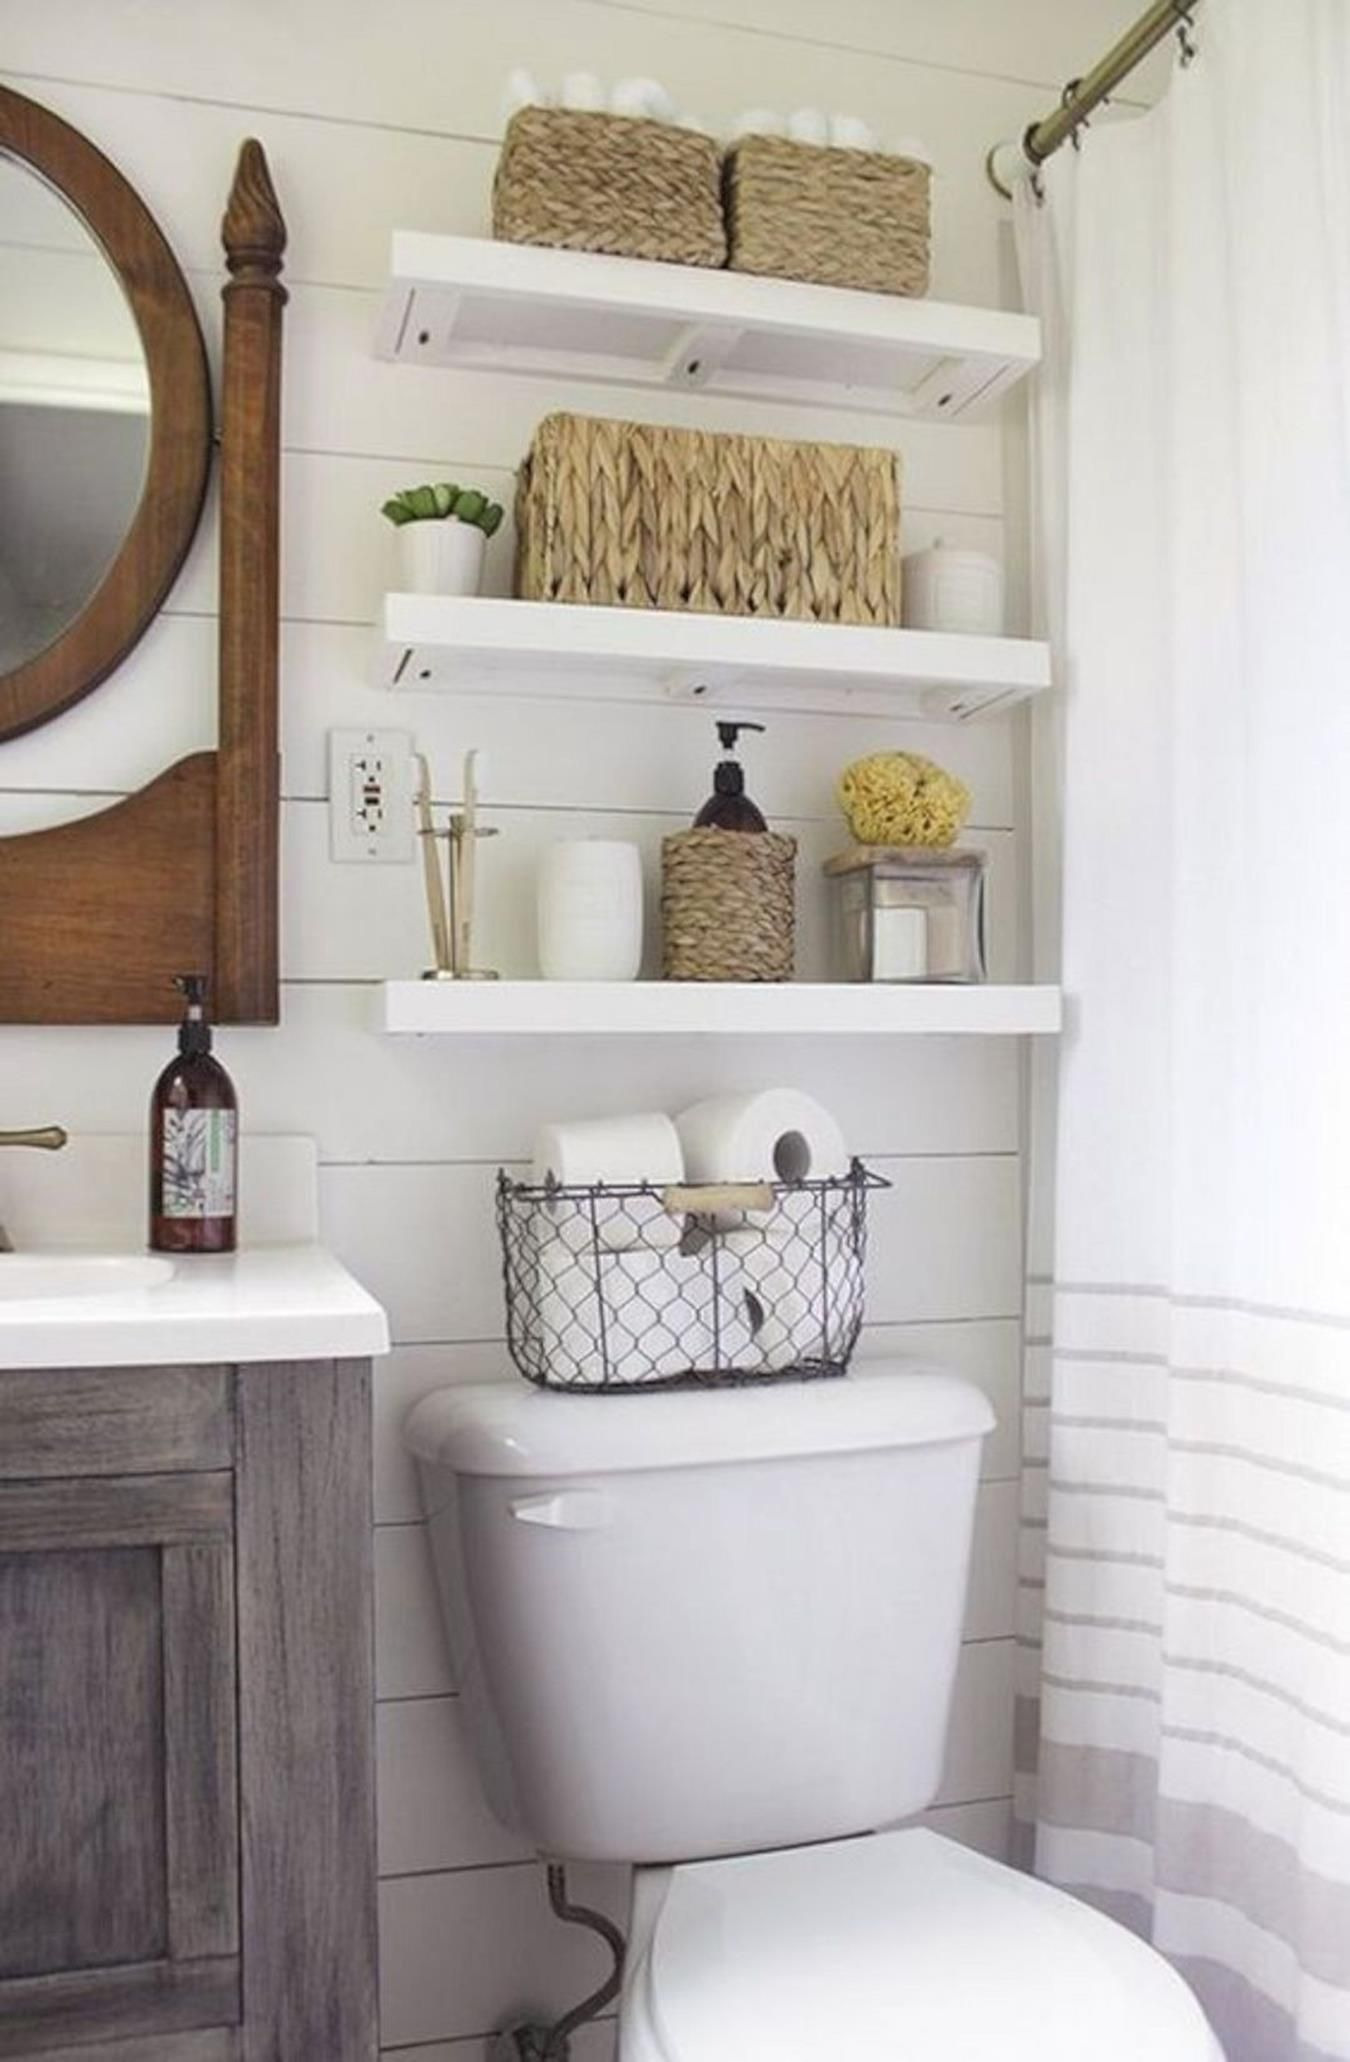 Decorating Ideas for Bathrooms On A Budget Fresh 42 Perfect Small Bathroom Decorating Ideas